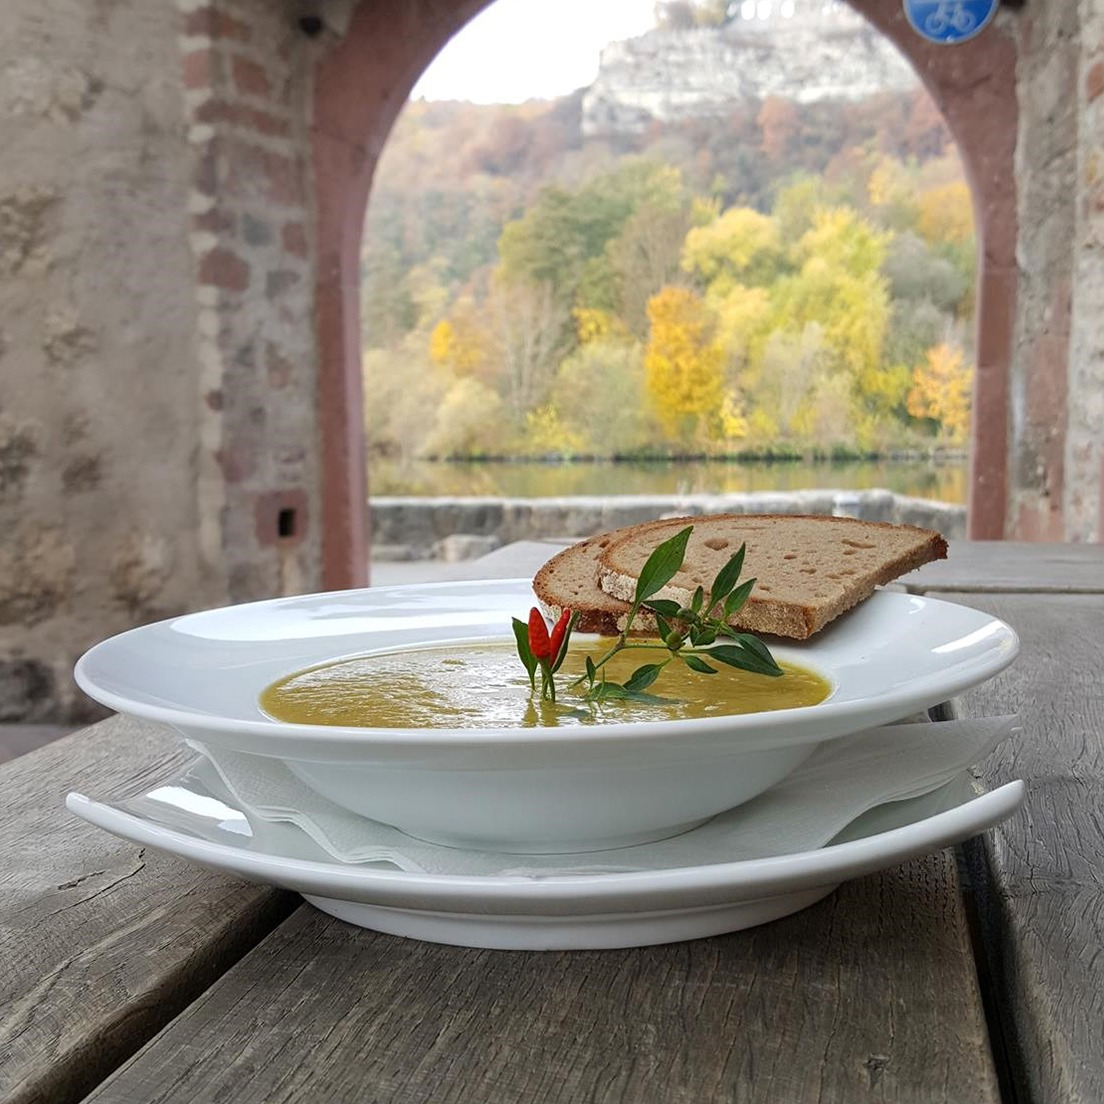 Main Mäuerle Suppe mit Brot